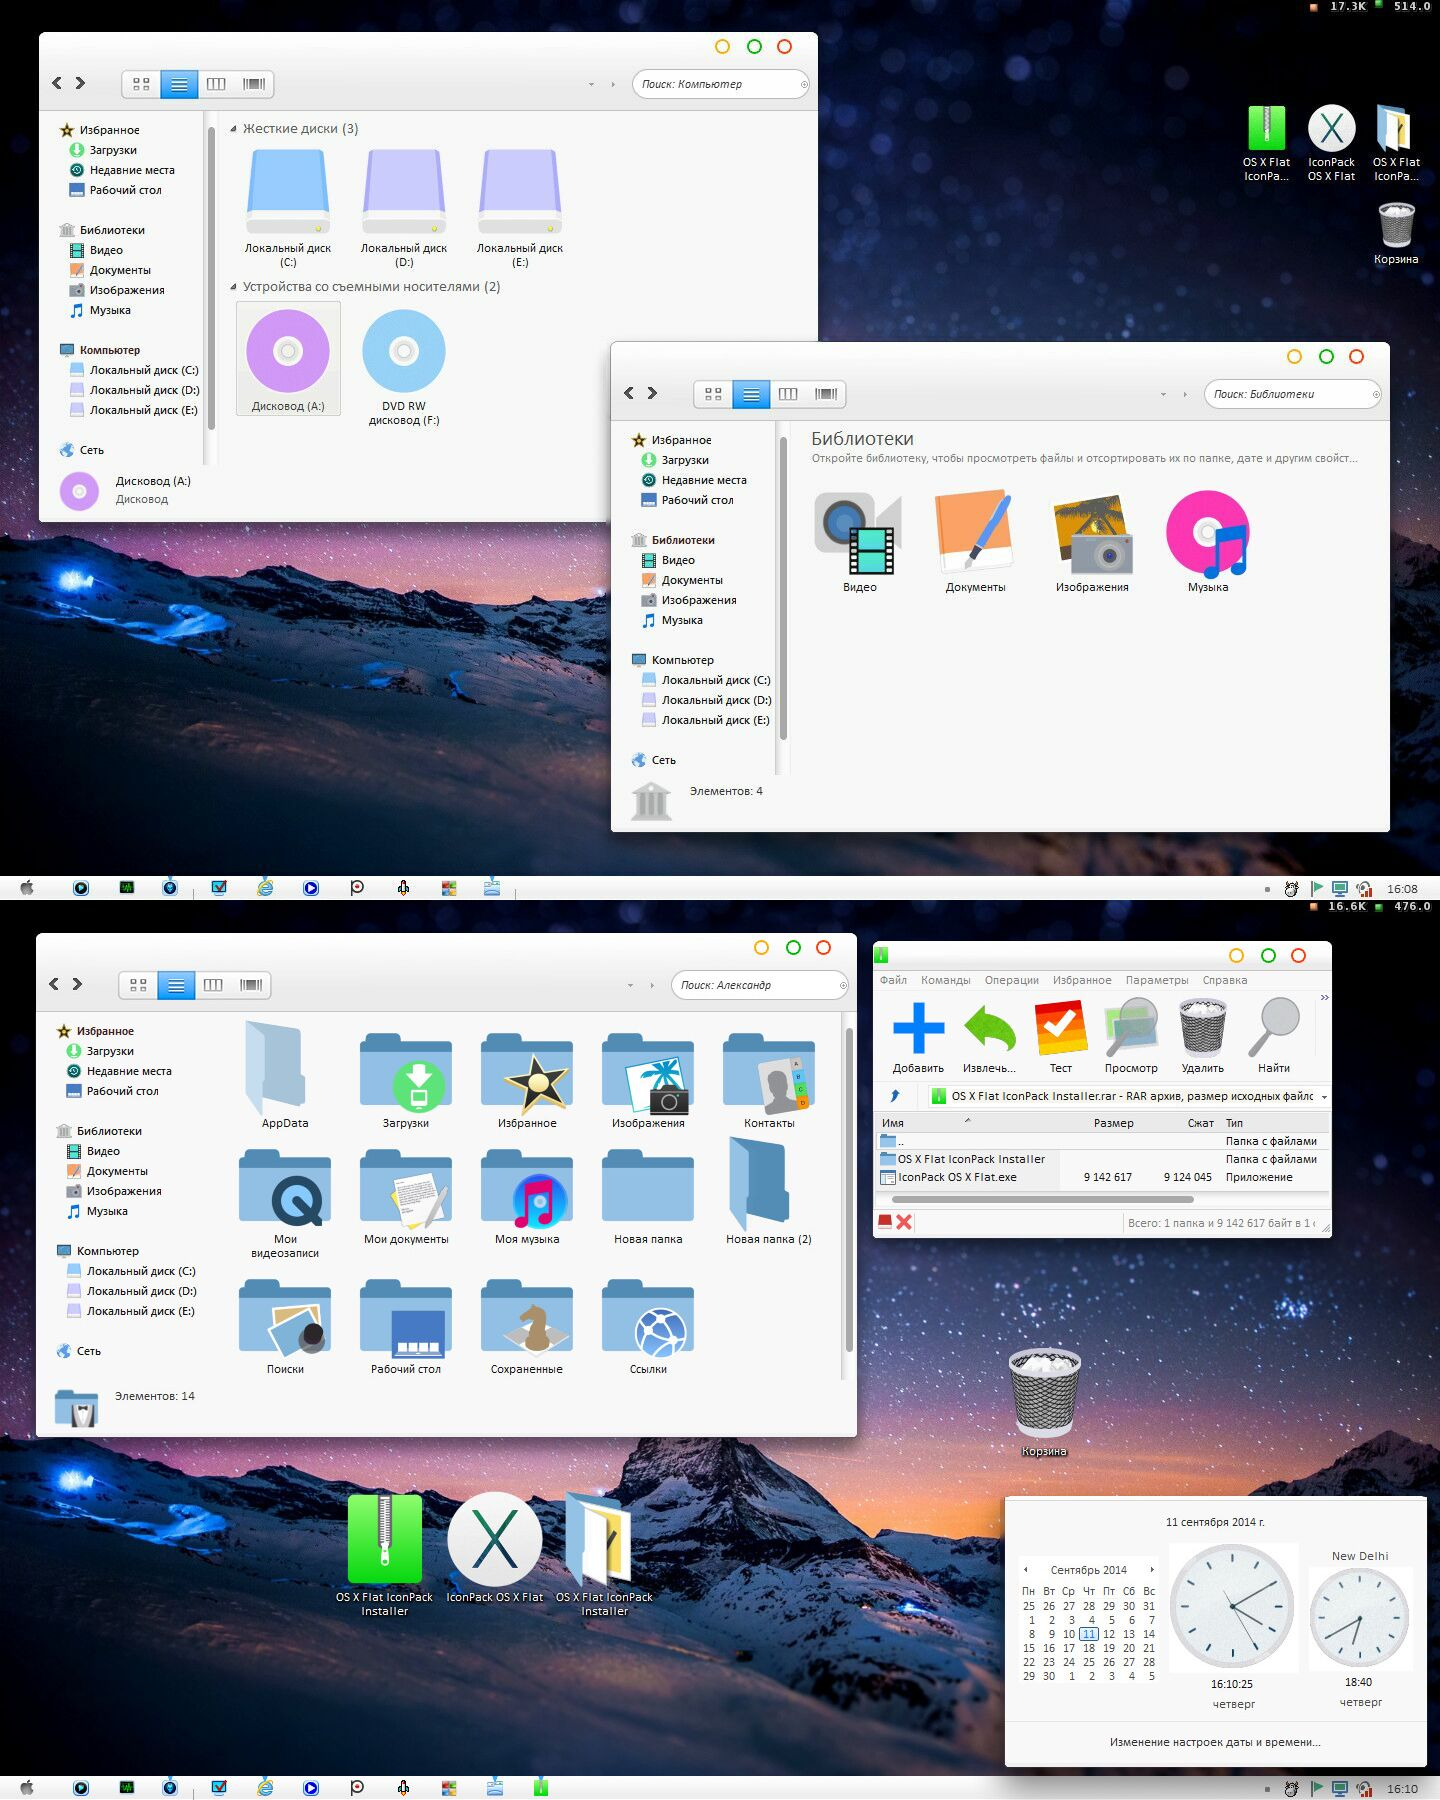 OS X Flat IconPack Installer by alexgal23 on DeviantArt